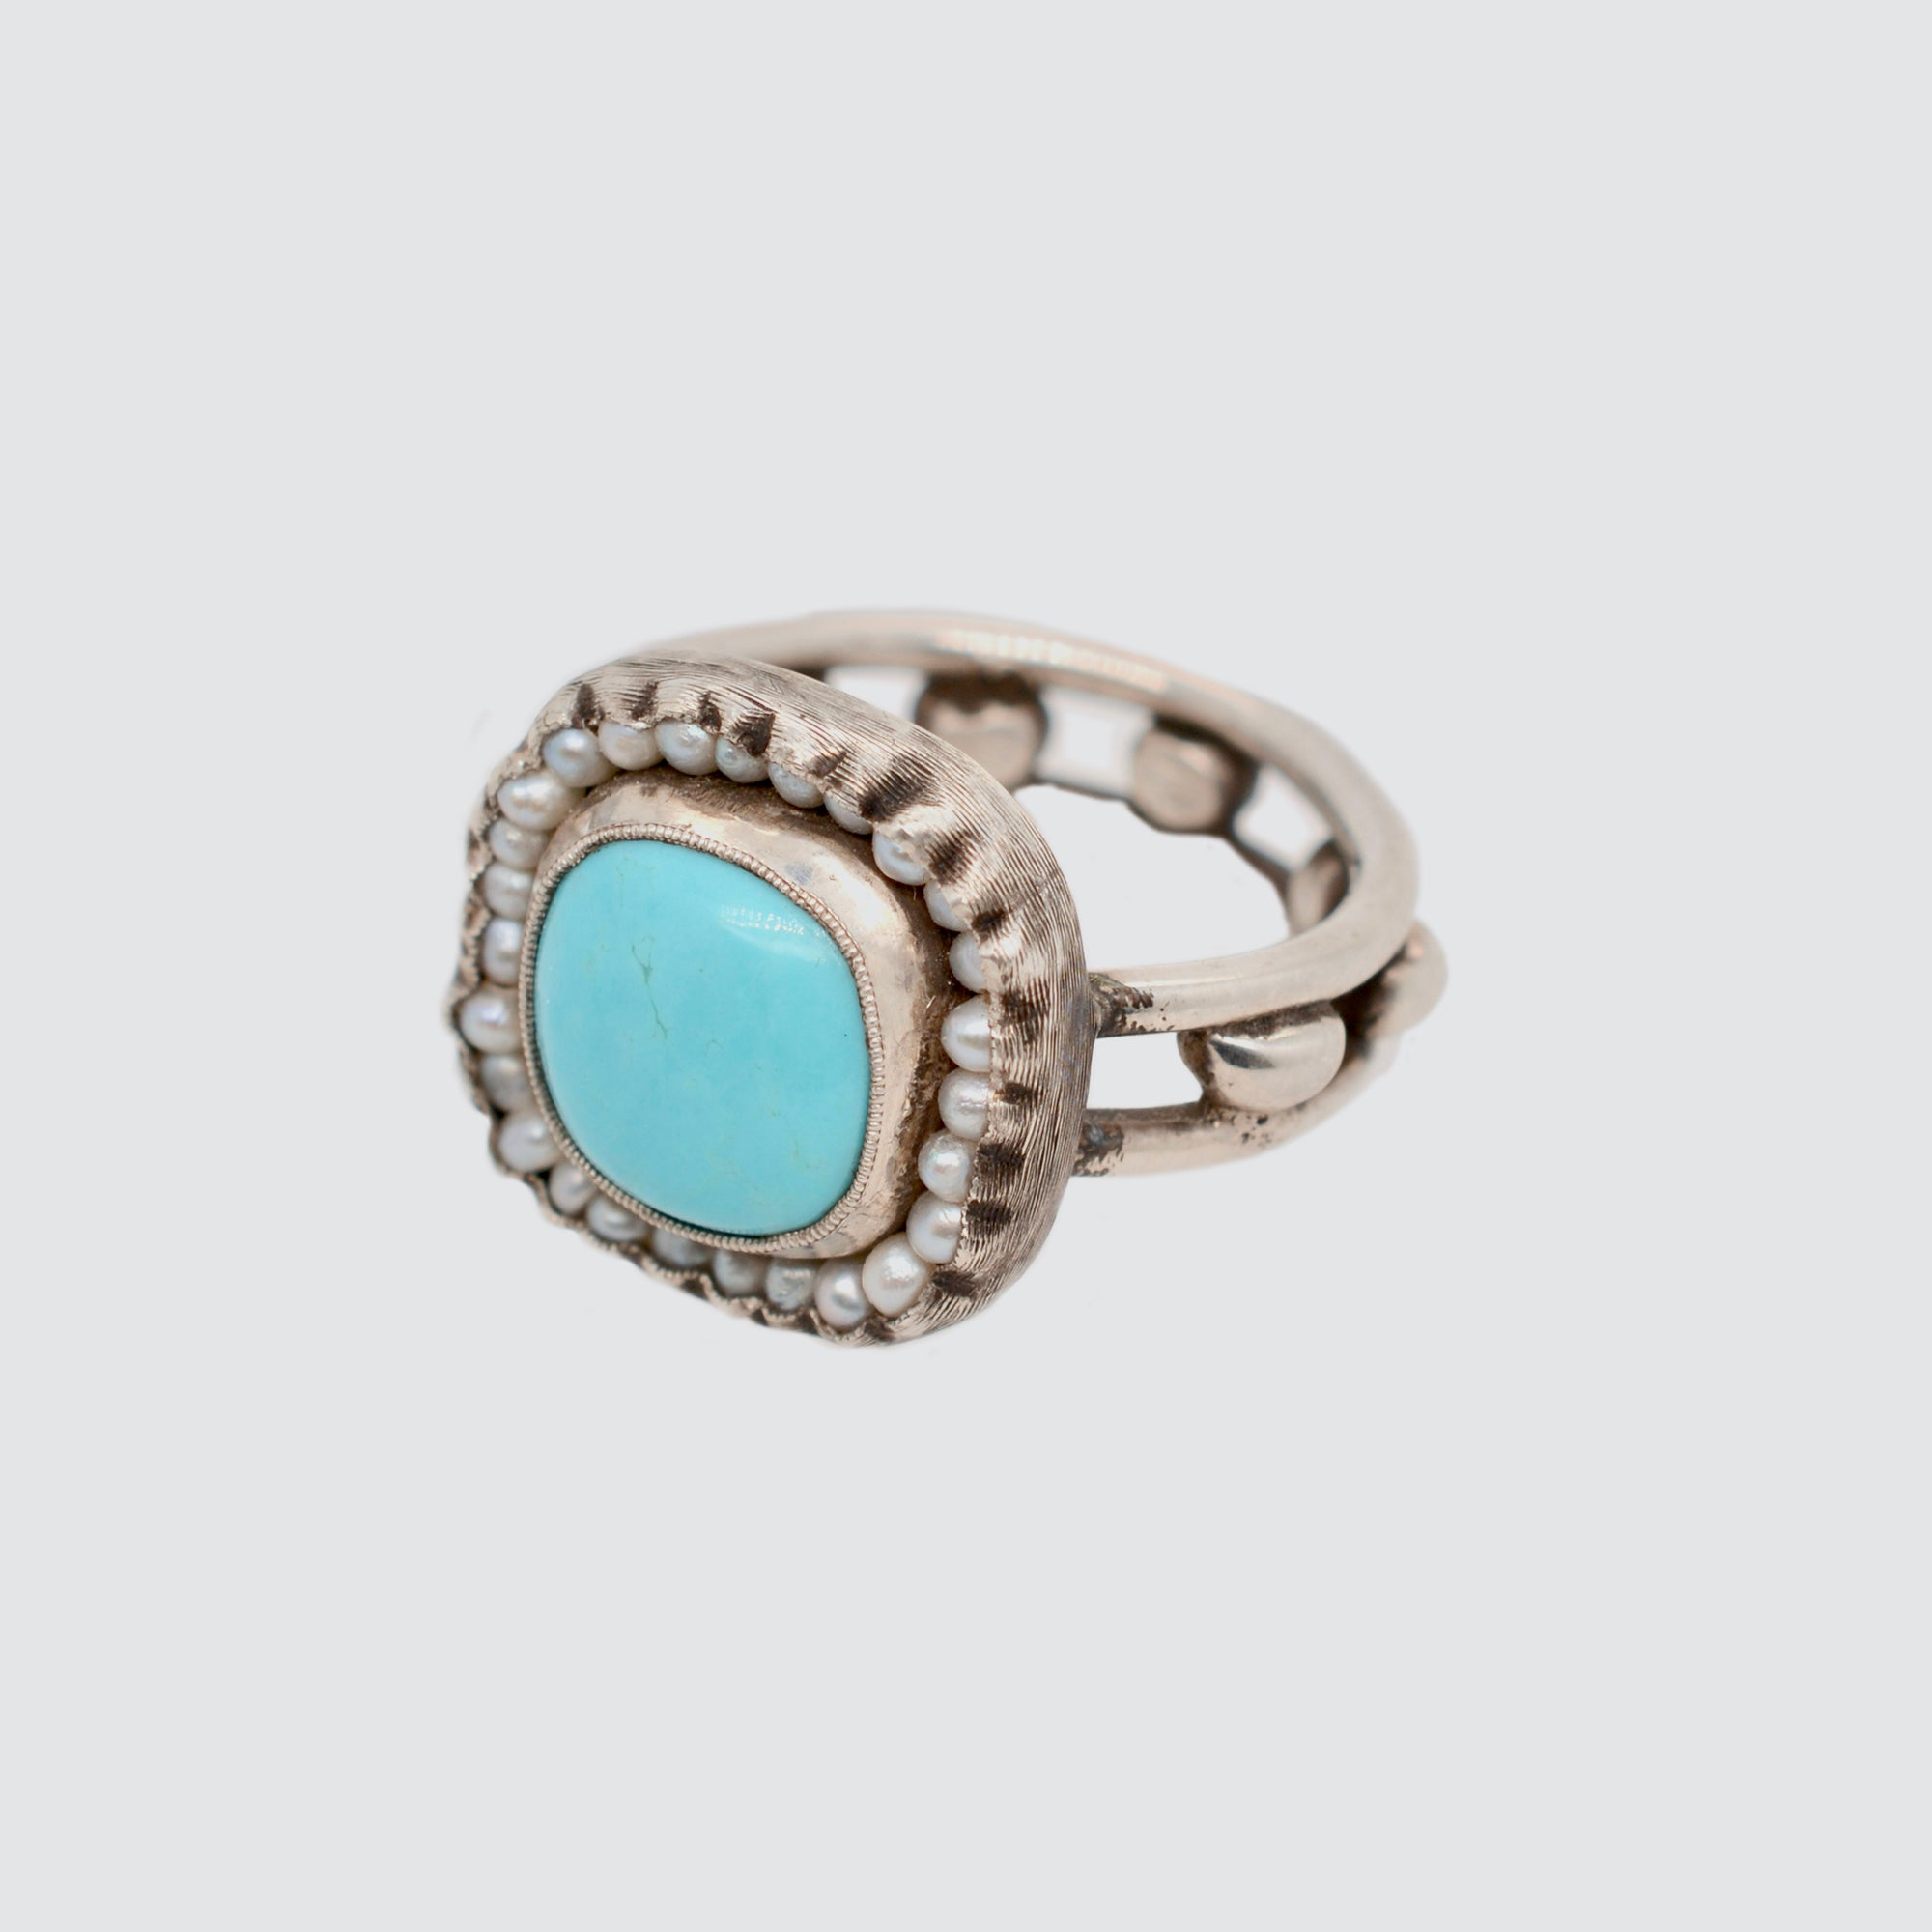 HEIRLOOM RING // SLEEPING BEAUTY TURQUOISE